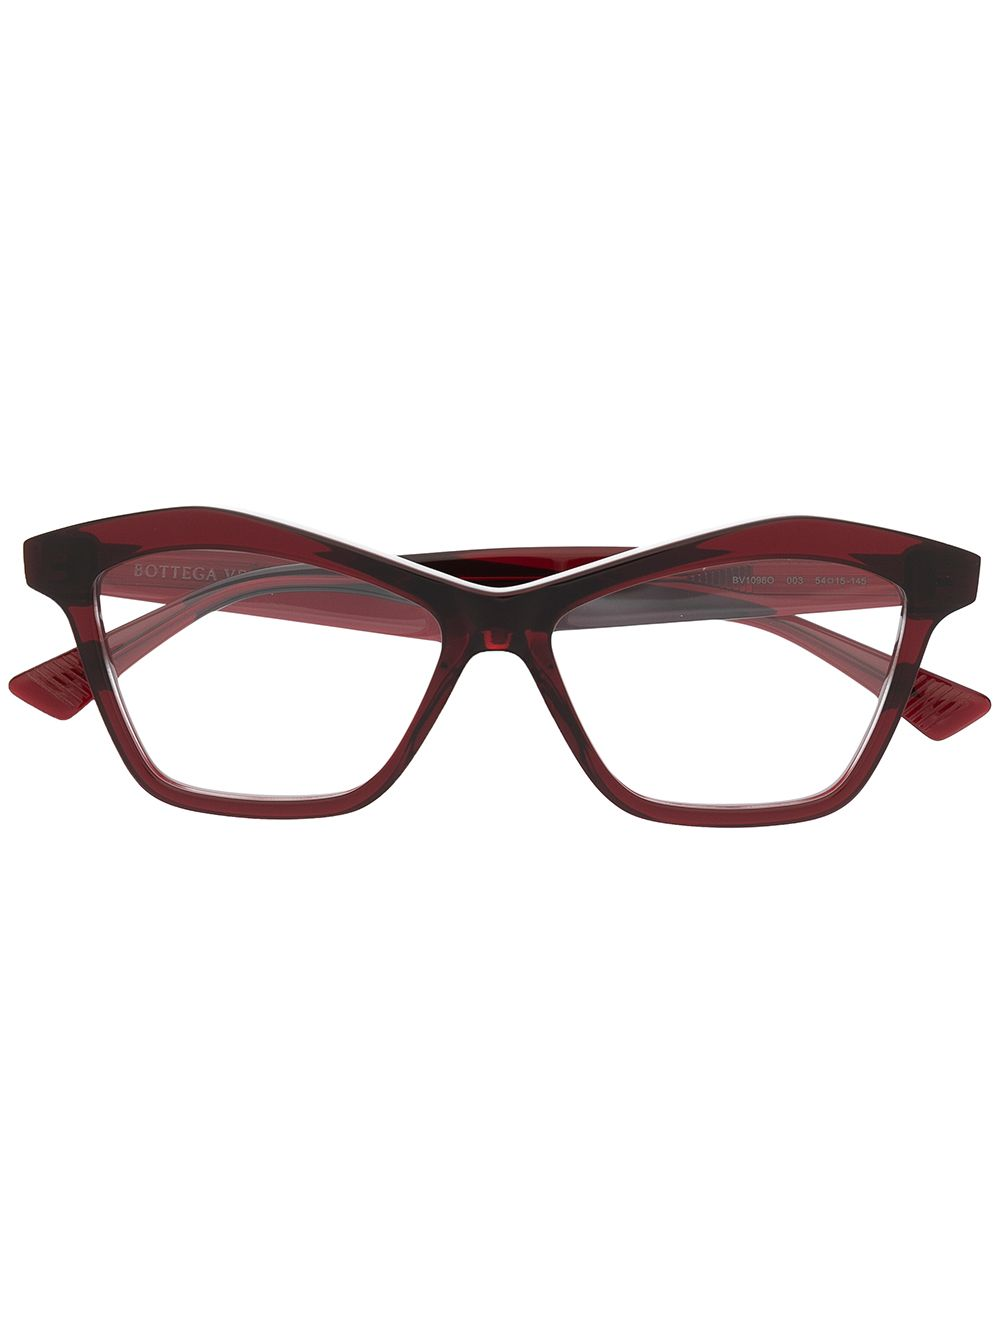 Bottega Veneta Eyewear Eckige Cat-Eye-Brille - Rot von Bottega Veneta Eyewear